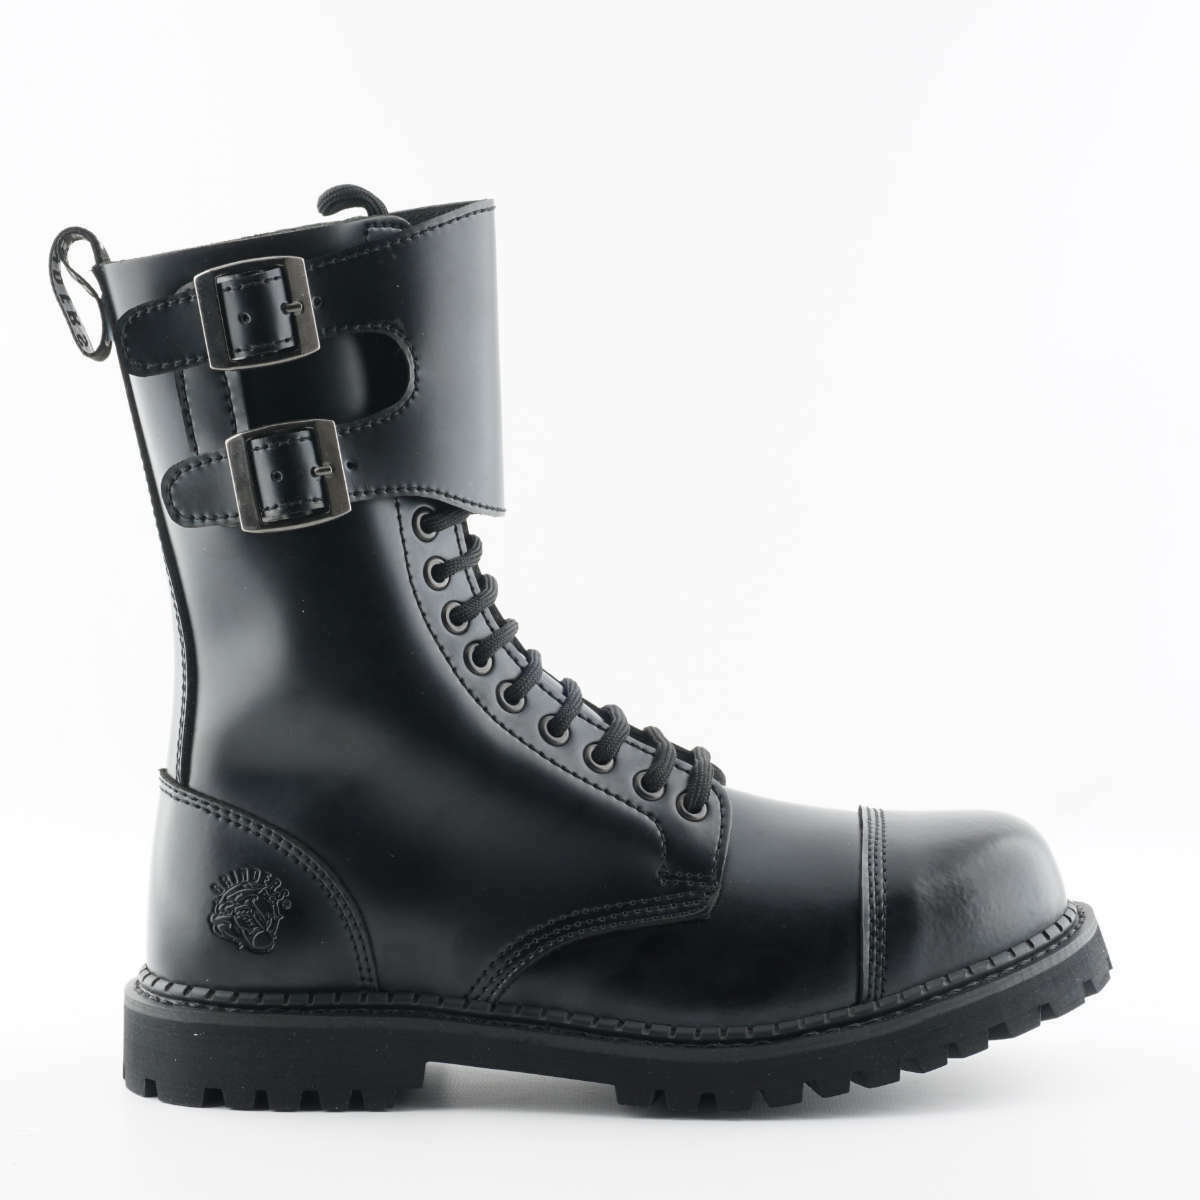 Grinders Camelot CS Black 14 Eyelet Twin Buckle Unisex Safety Steel Toe Boots